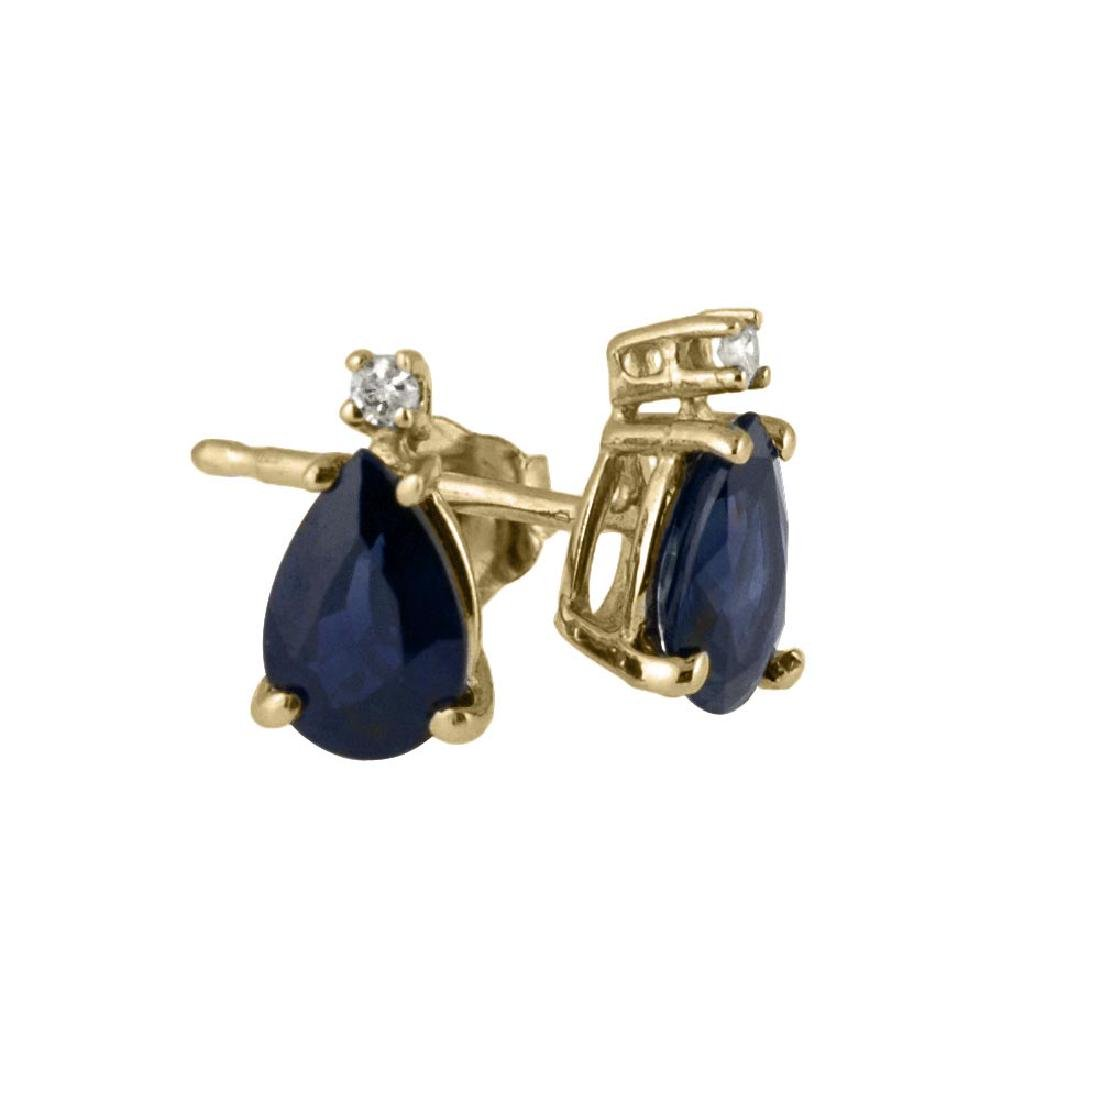 Certified 14k Yellow Gold Pear Shaped Sapphire And Diam